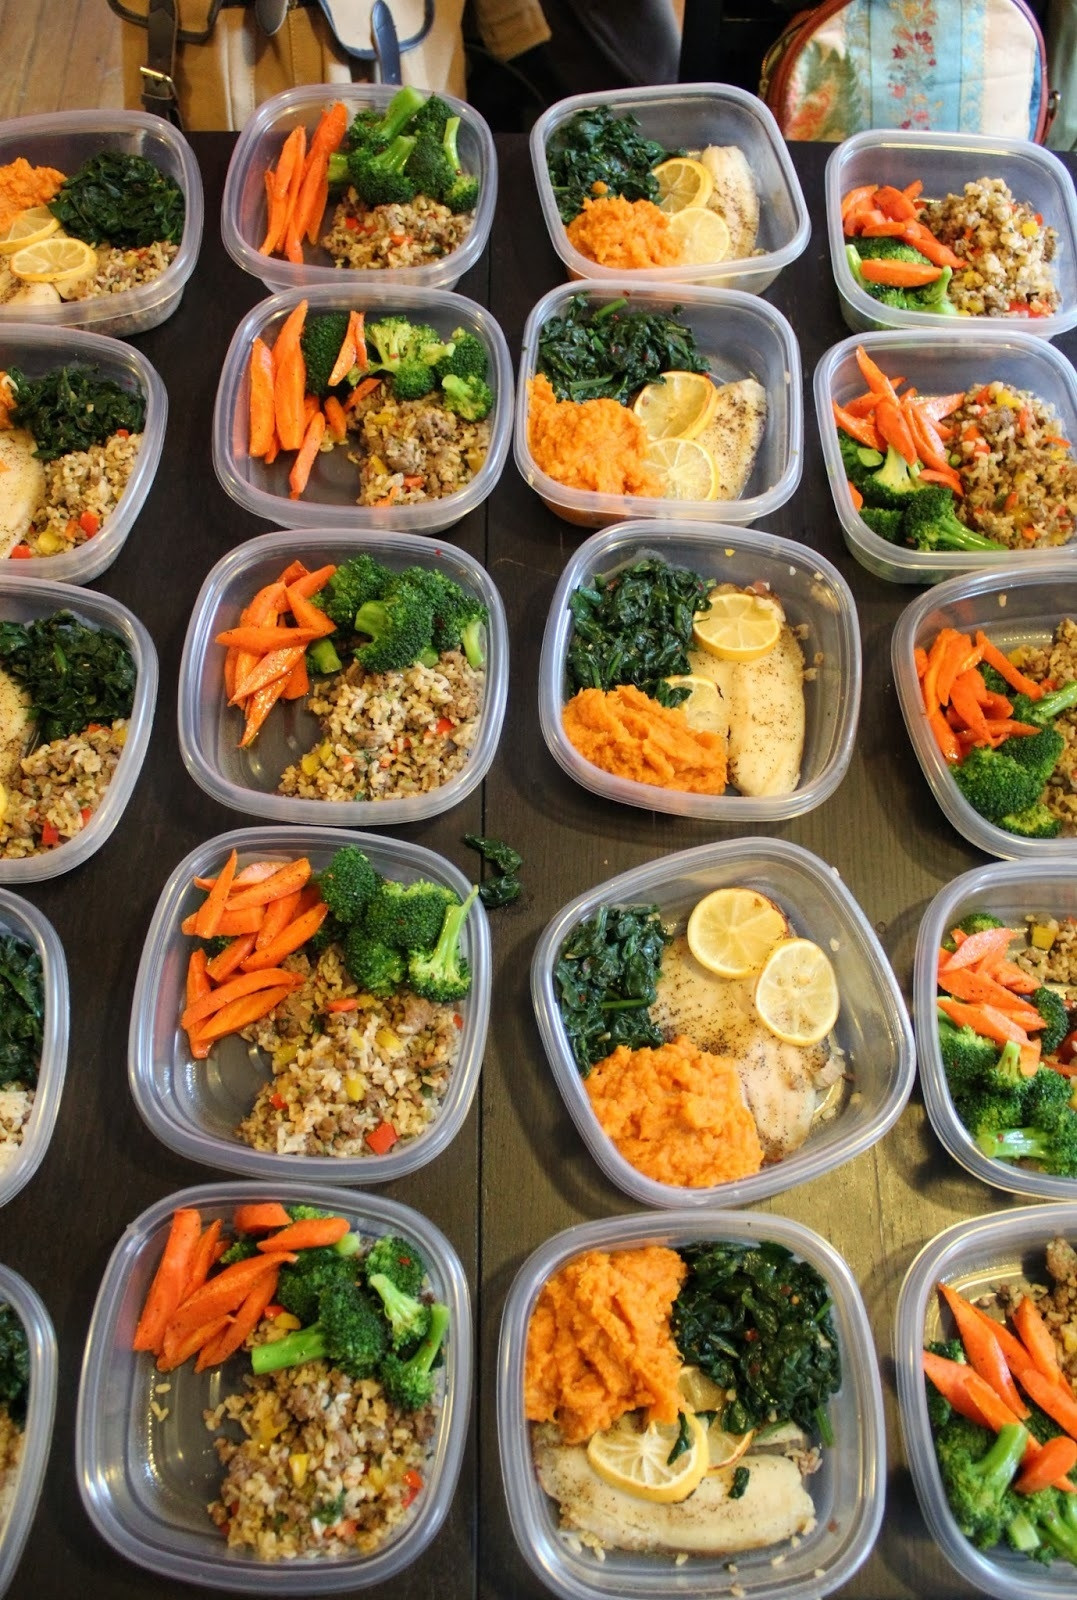 Simple Healthy Dinners  Healthy Meal Prep Ideas For The WeekWritings and Papers